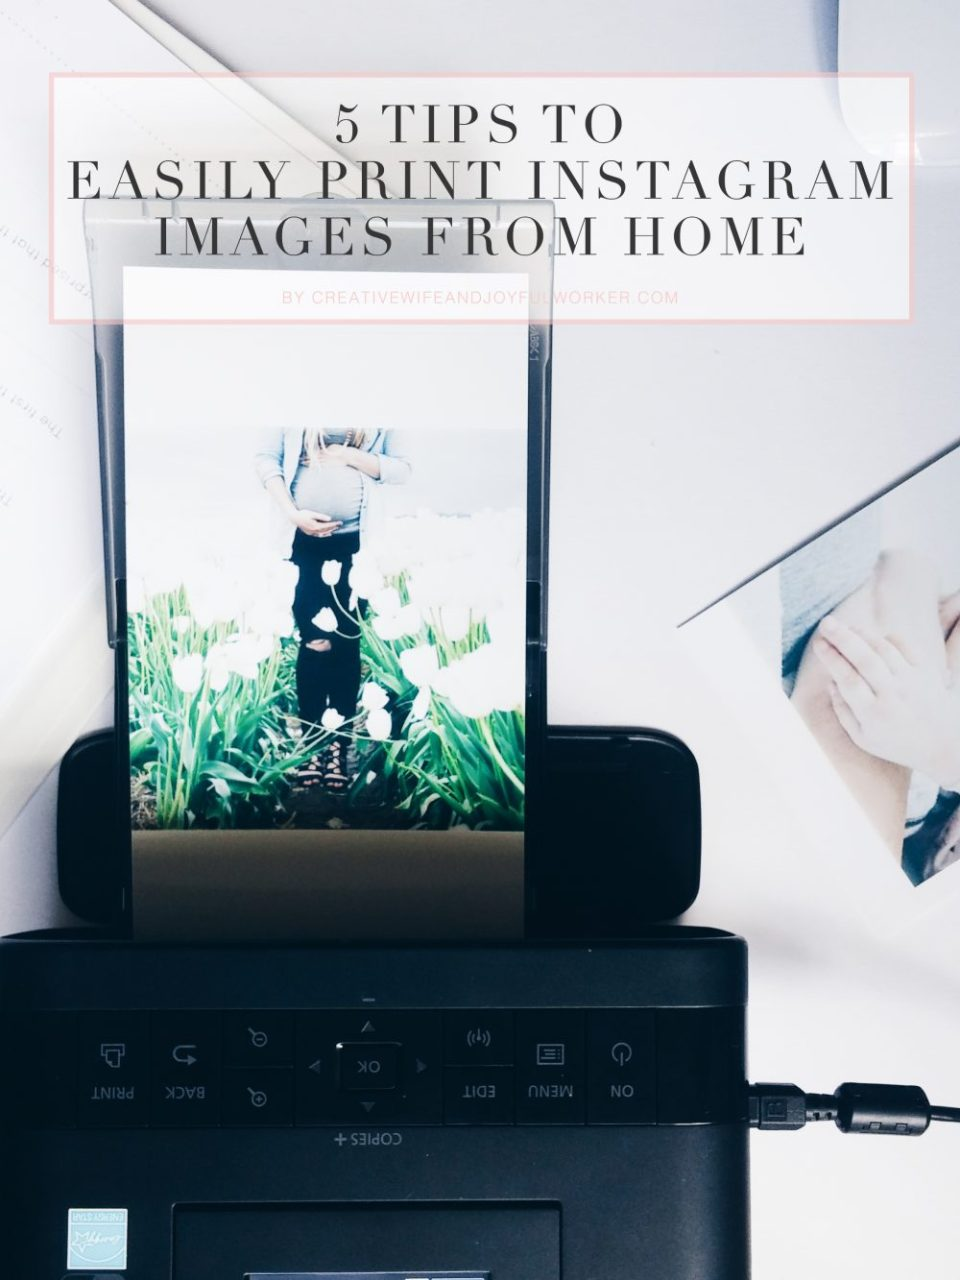 5 Tips To Print Instagram Images From Home